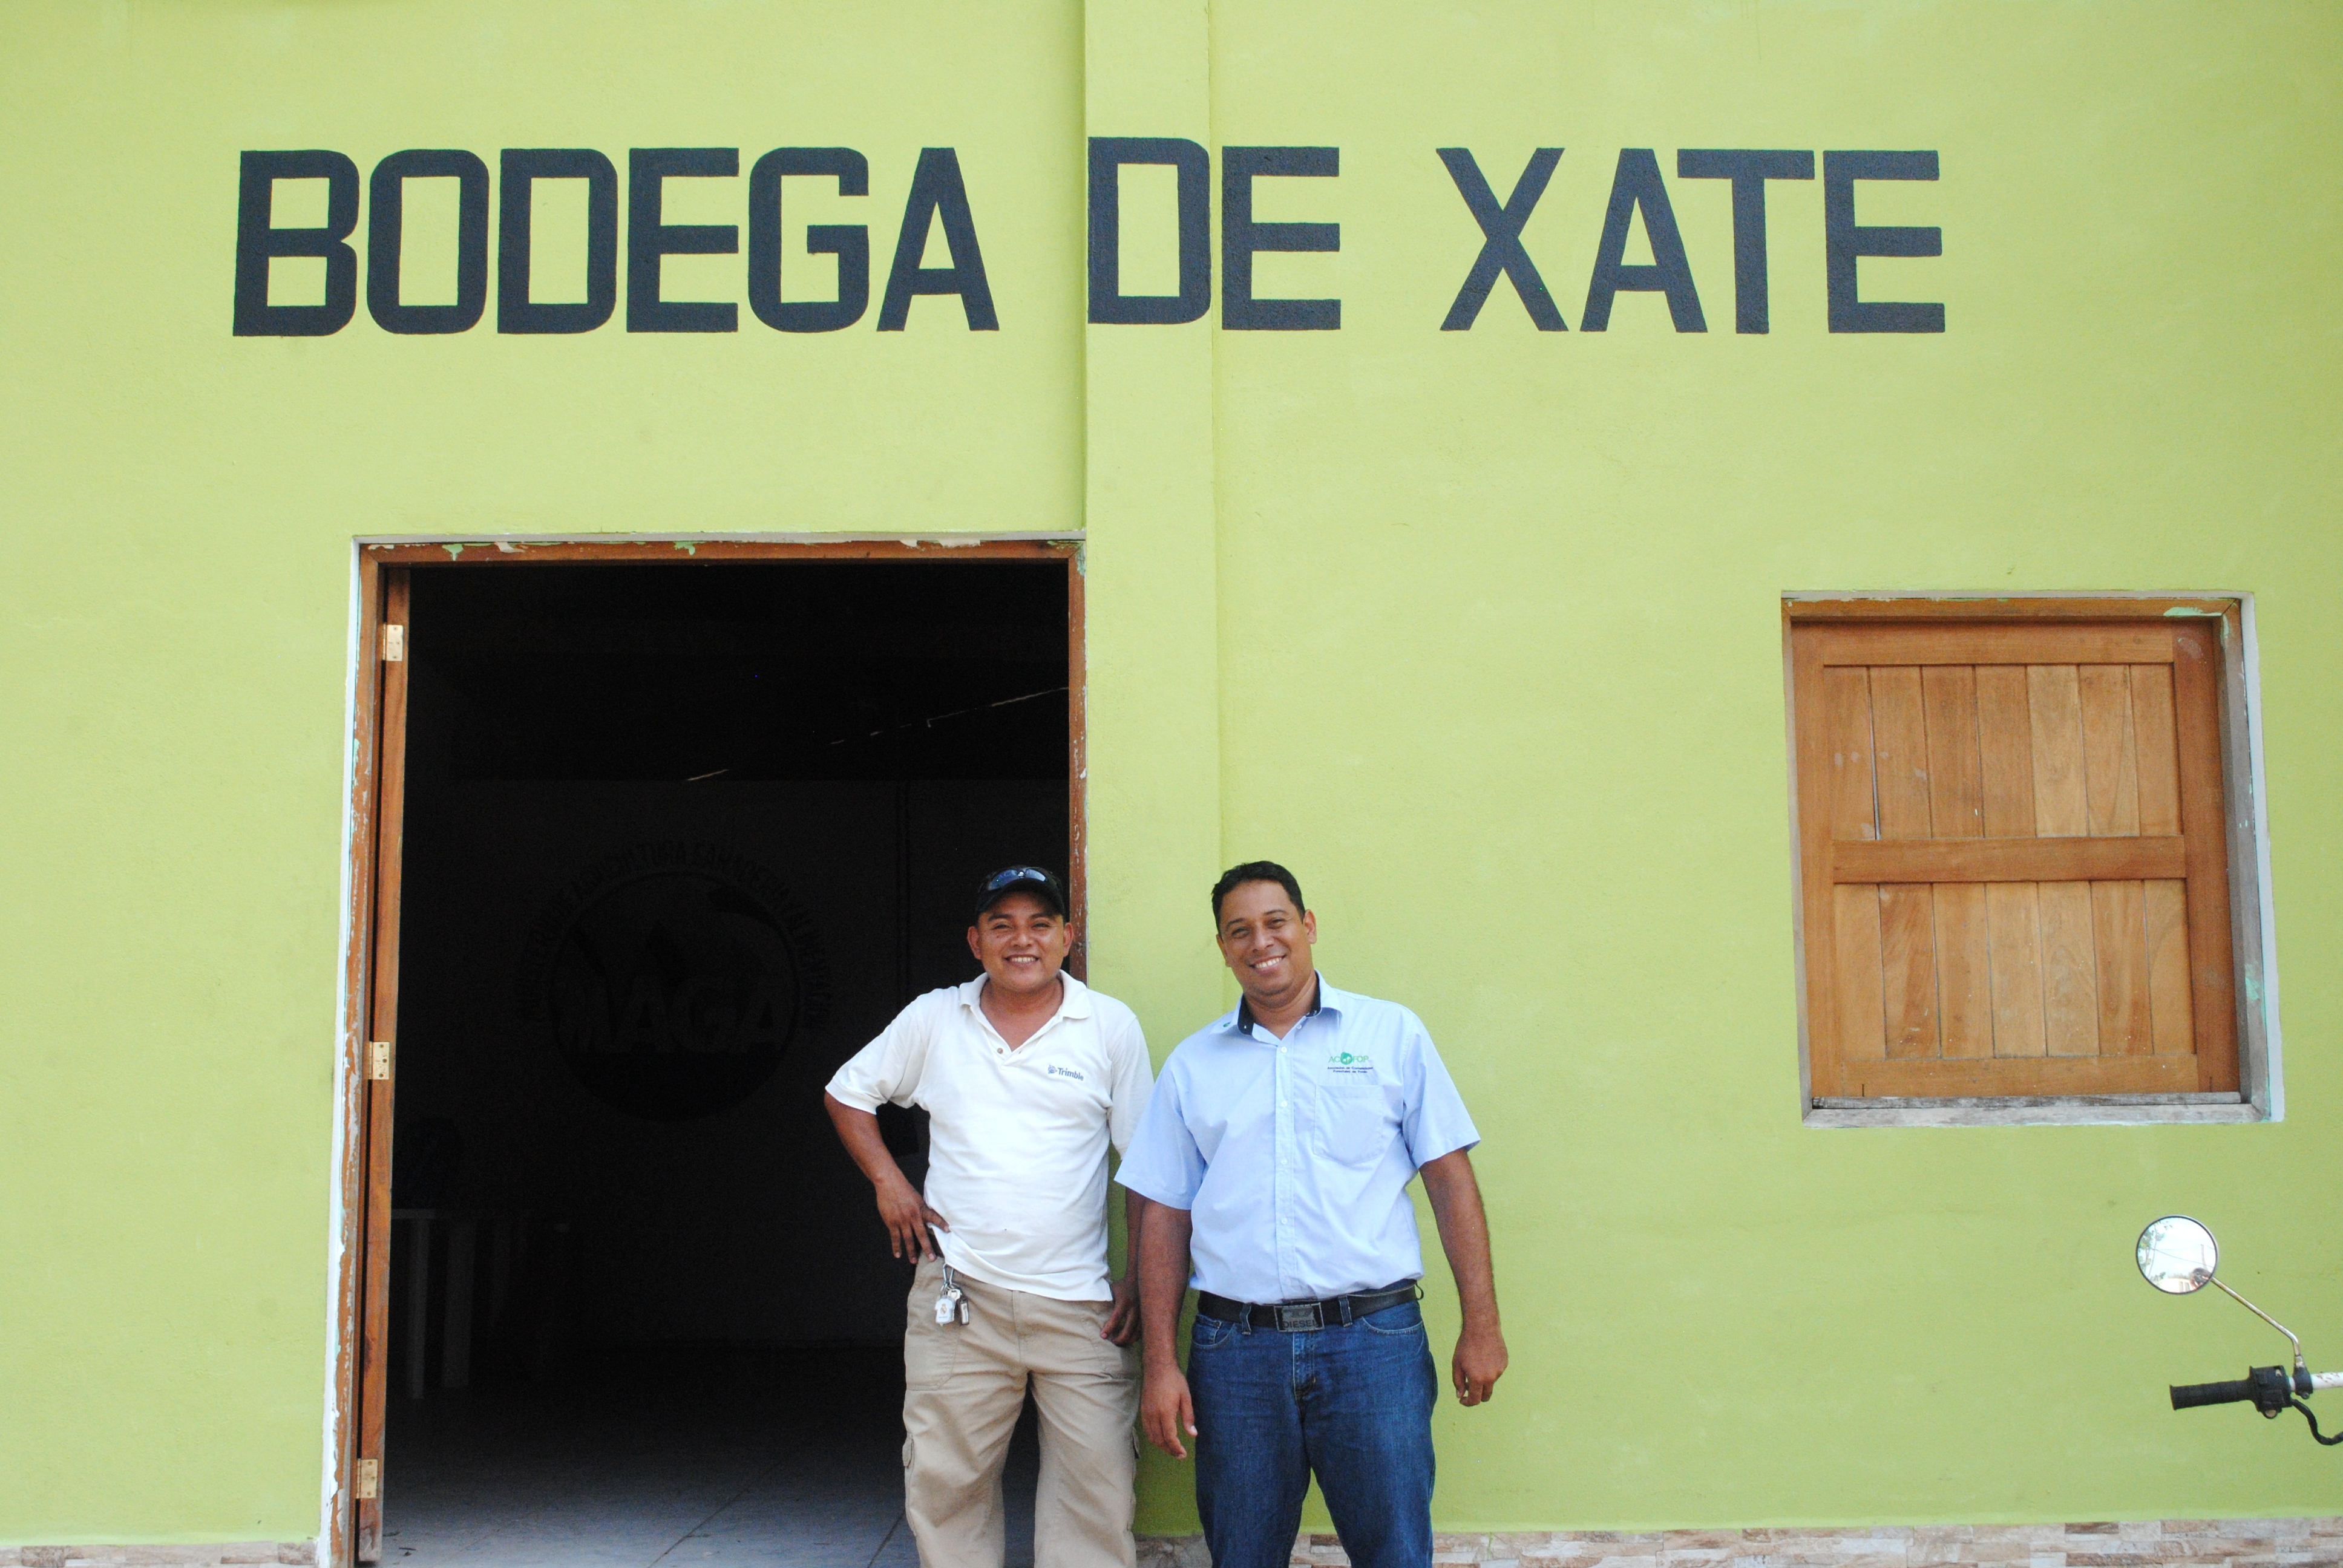 Melvin Barrientos, left, and Elmer Salazares of the Association of Forest Communities of Petén stand outside the xate bodega.